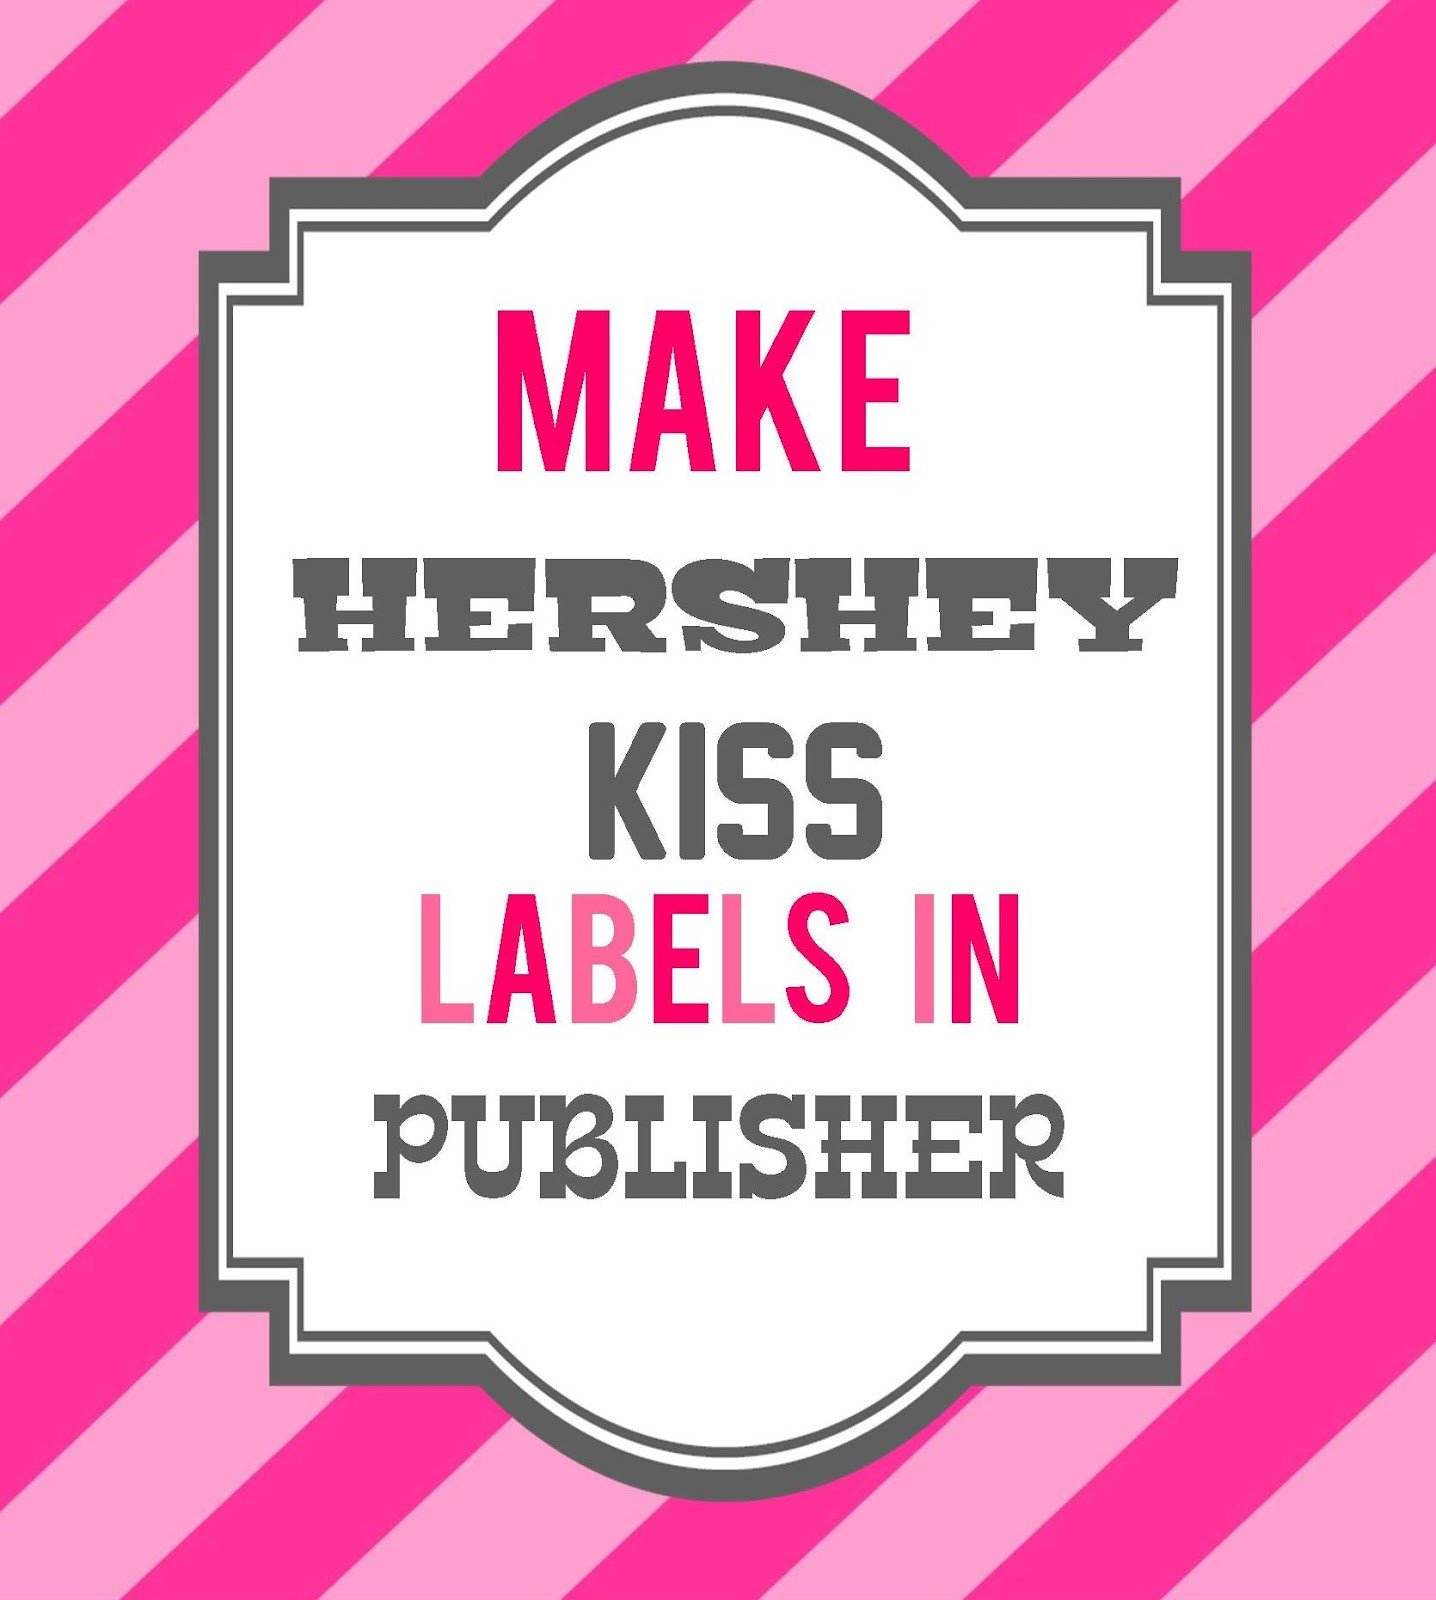 Hershey Kiss Labels Template How to Make Hershey Kiss Labels In Publisher